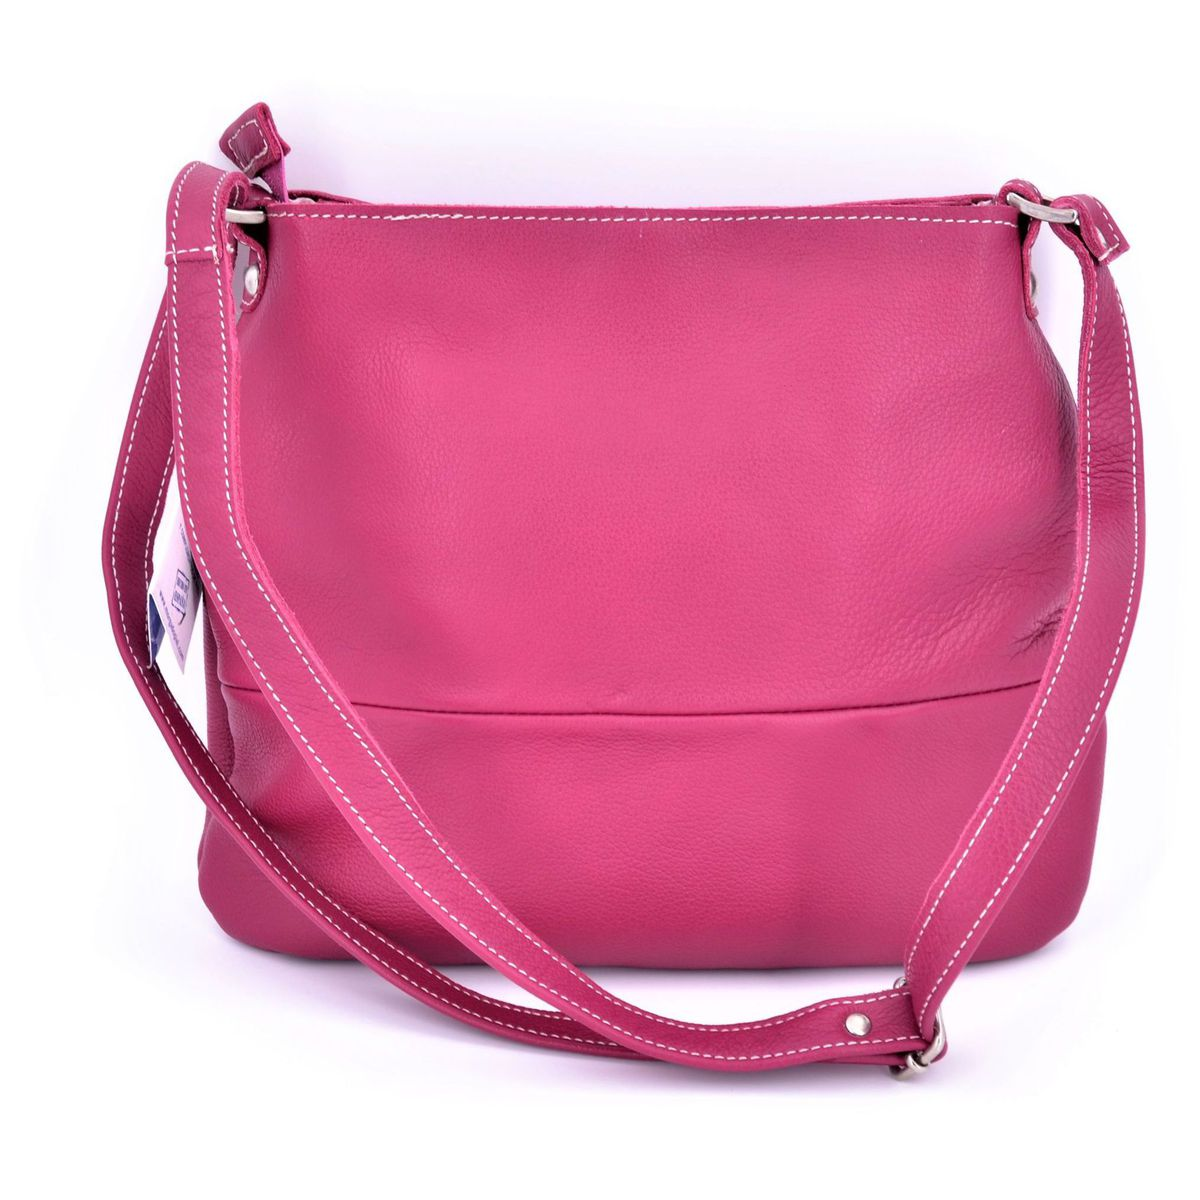 Morgado leather bag with shoulder strap Fuchsia BRASS Workshop